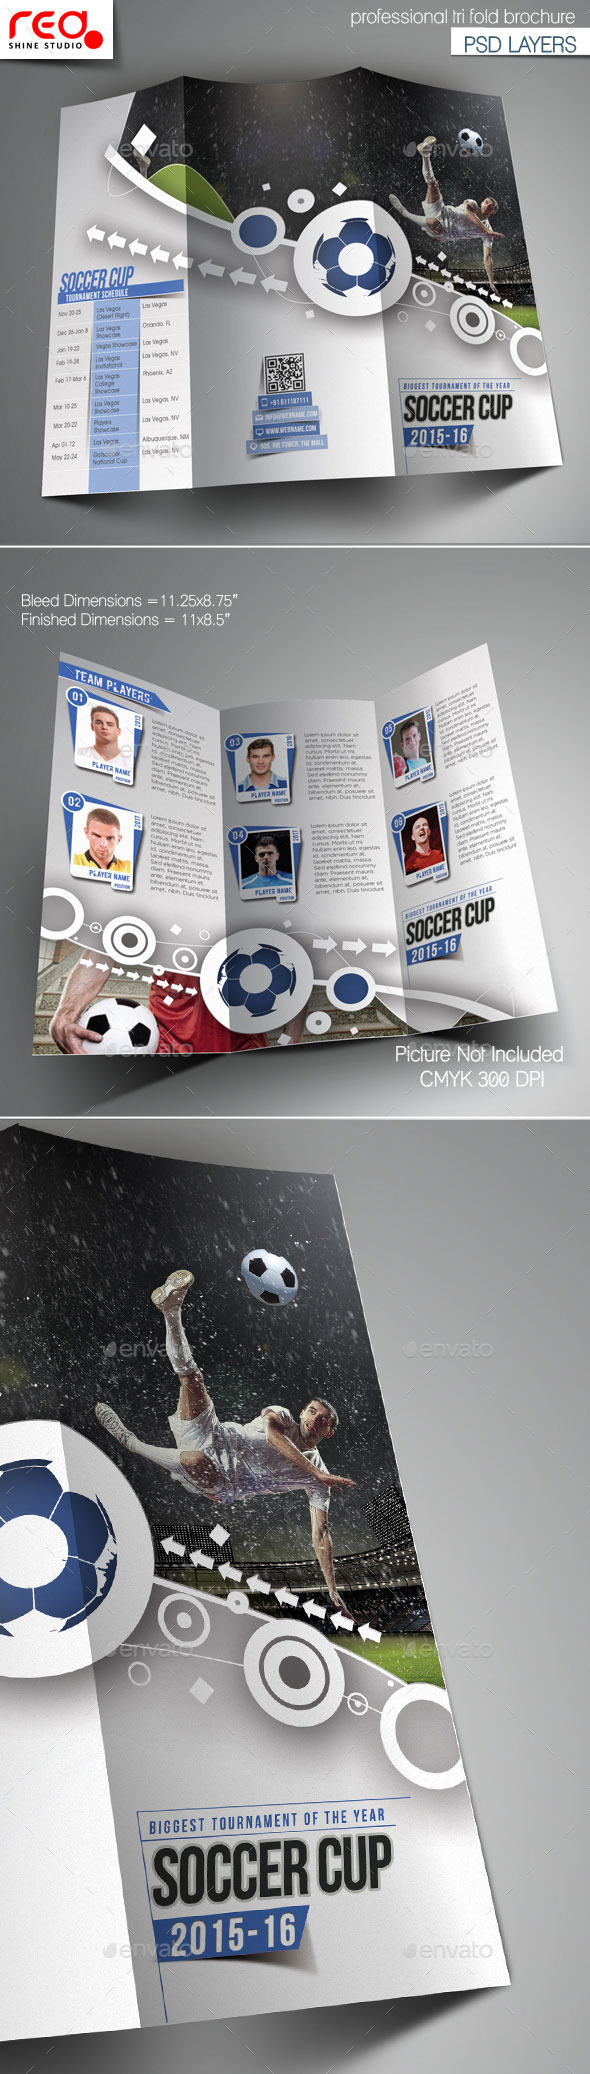 GraphicRiver Football Tournament Trifold Brochure Template 11087824